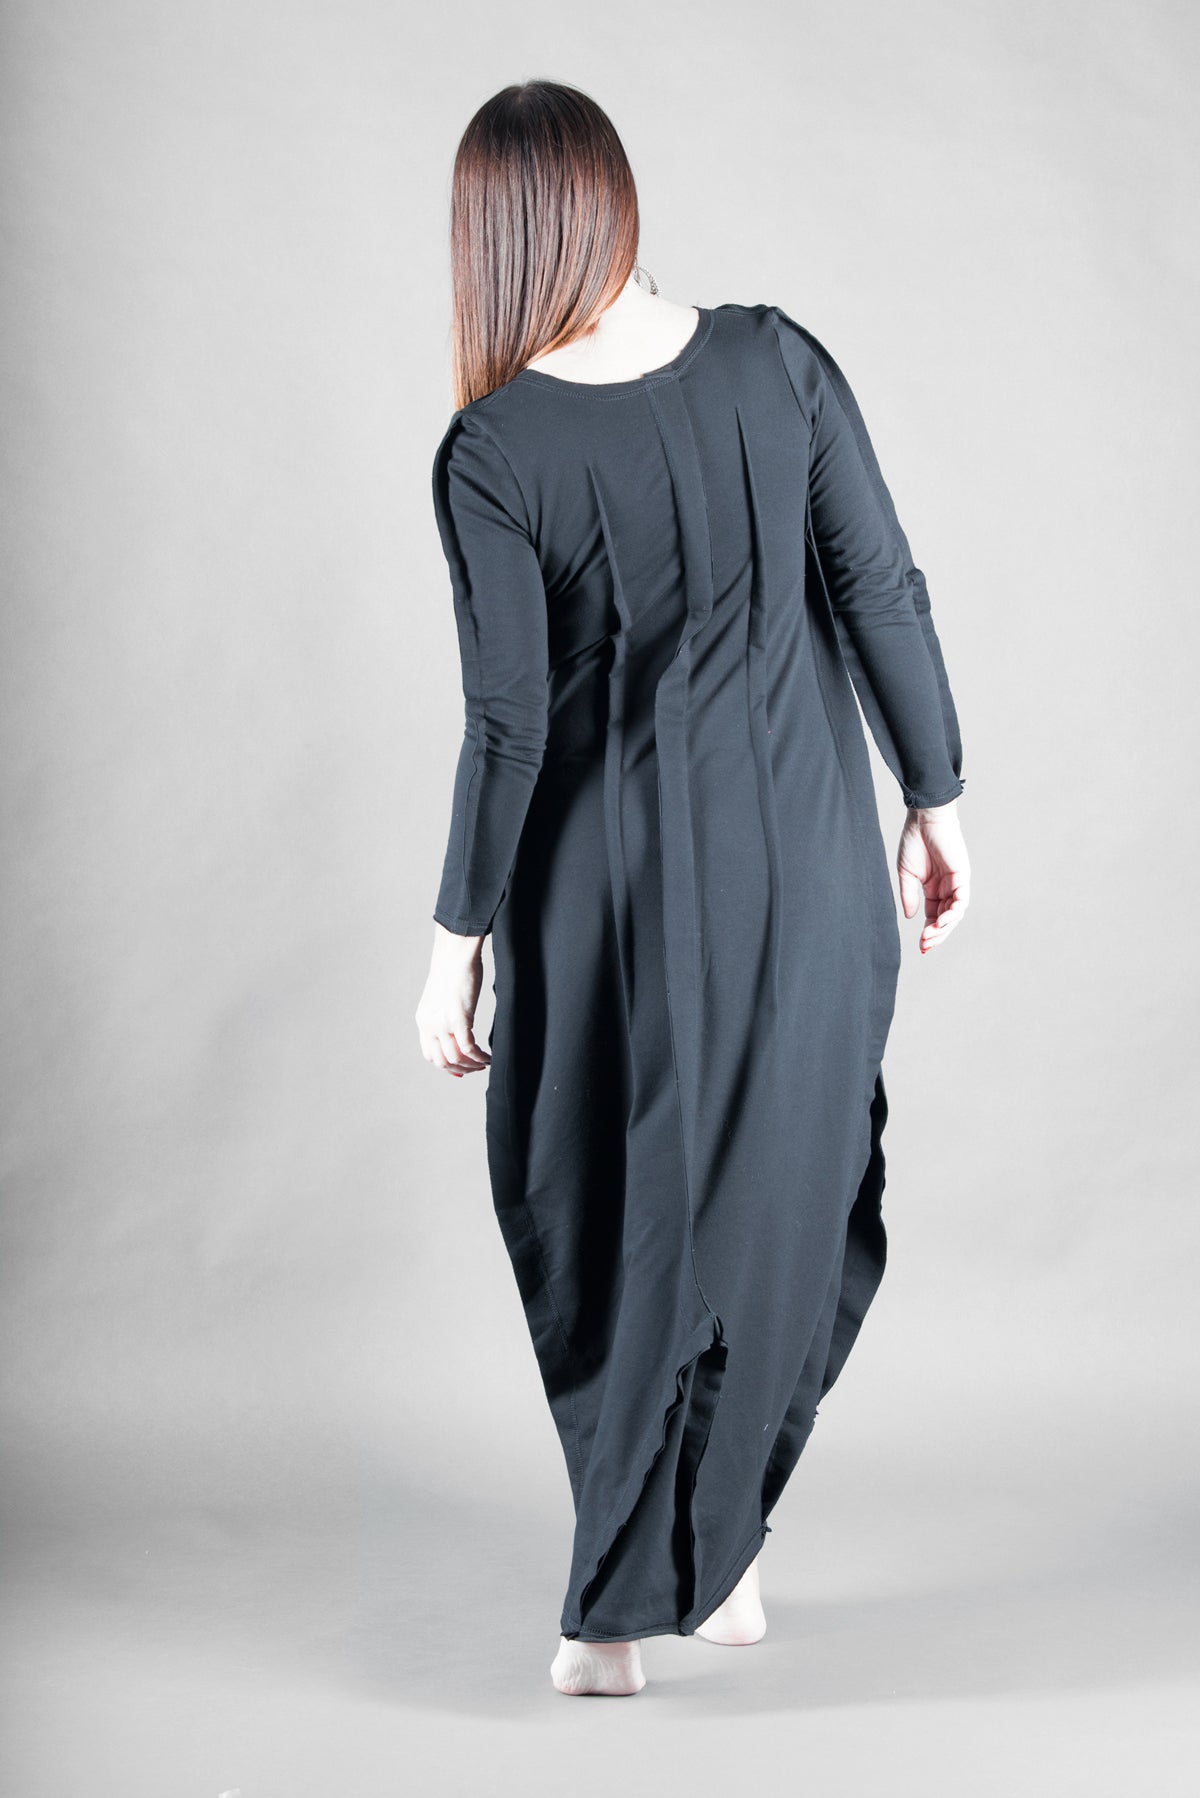 Black Plus Size Long Cotton Maxi Dress, Dresses & Maxi Dresses